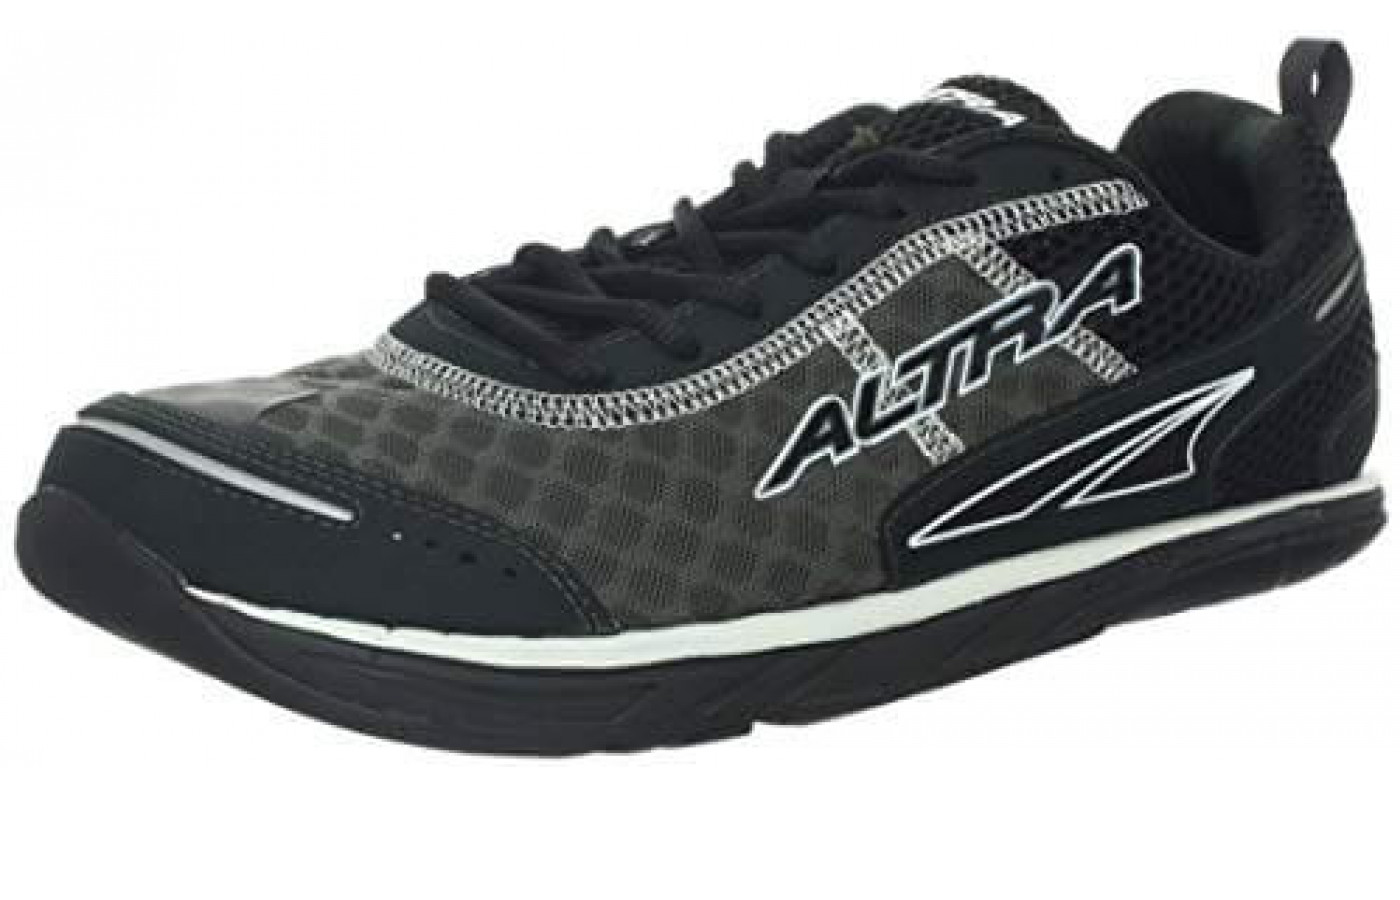 The Altra Instinct 1.5 features an EVA midsole with an A-Bound top layer